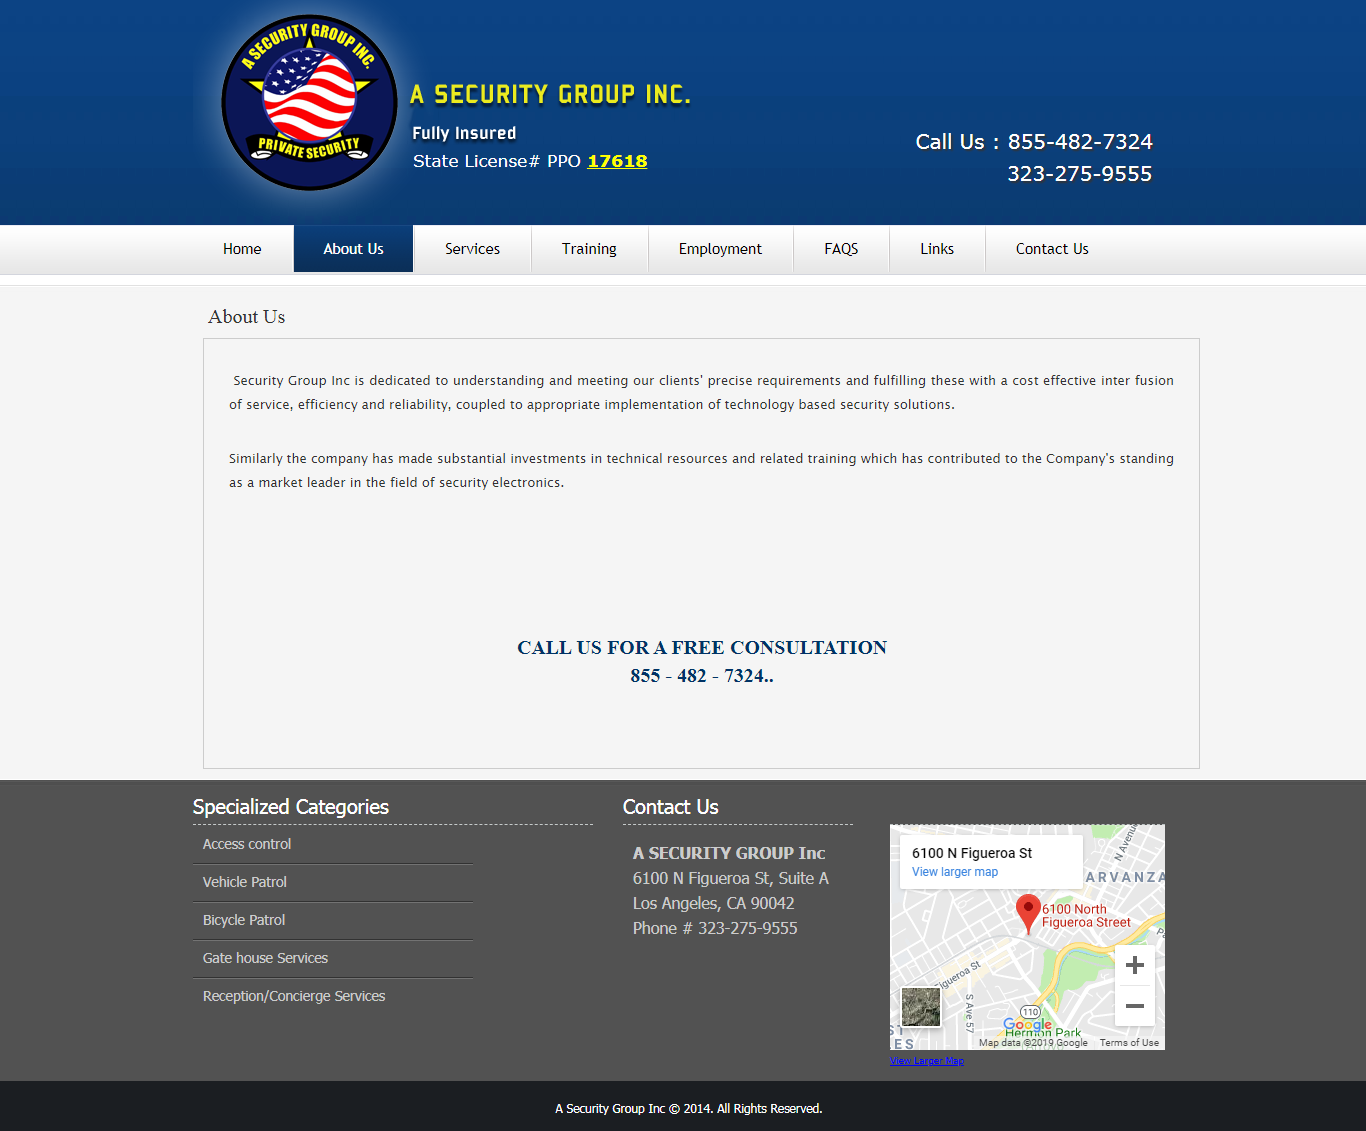 Security group Inc. is dedicated efficiency and